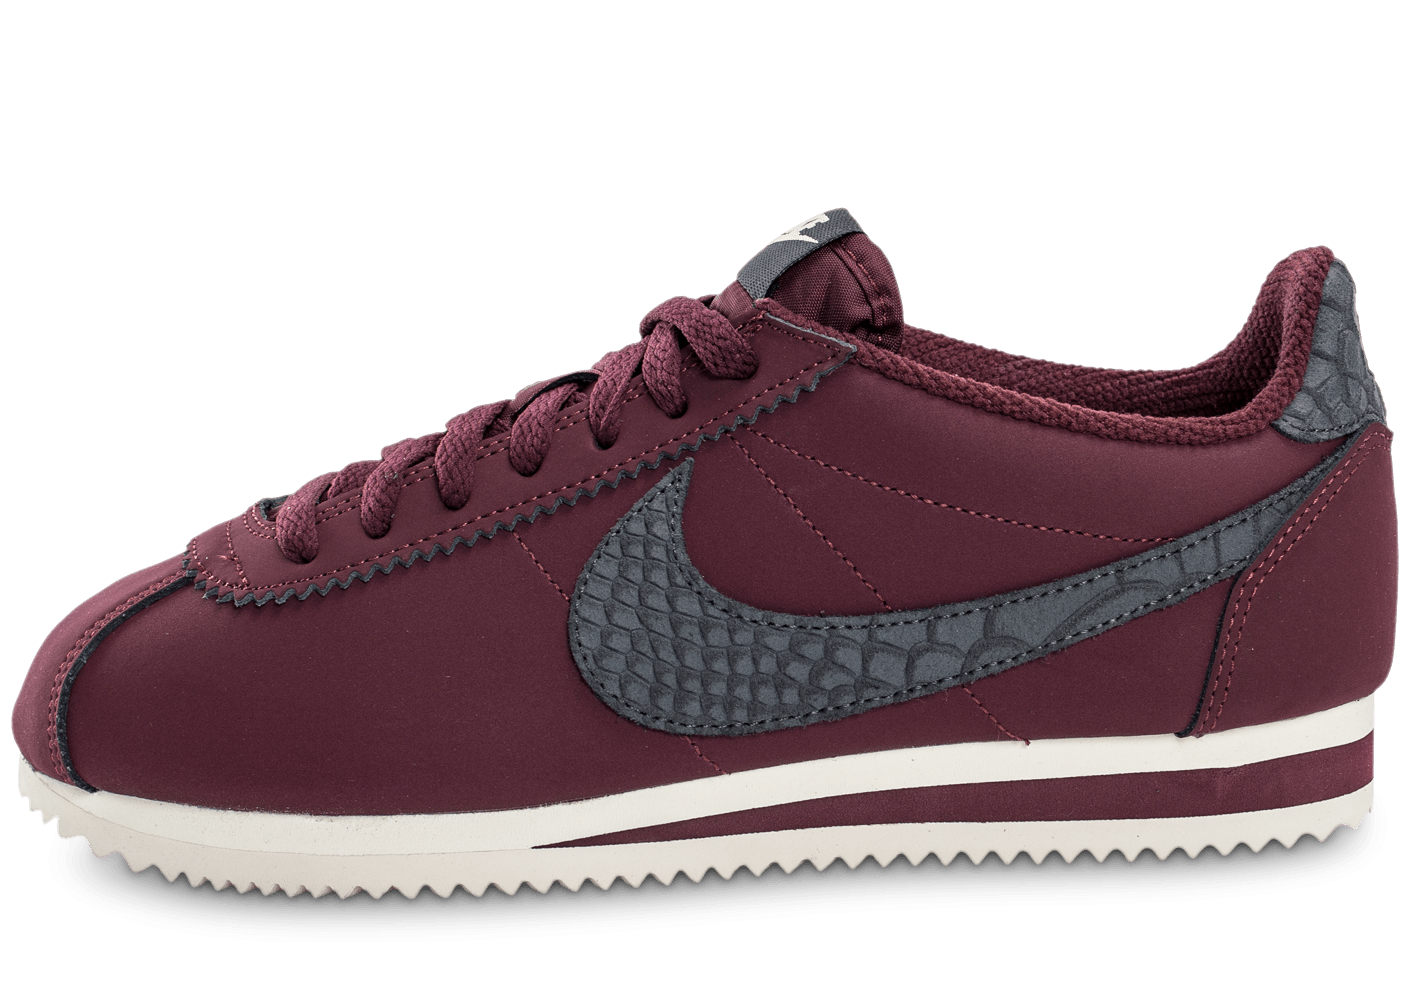 nike cortez leather se bordeaux chaussures homme chausport. Black Bedroom Furniture Sets. Home Design Ideas